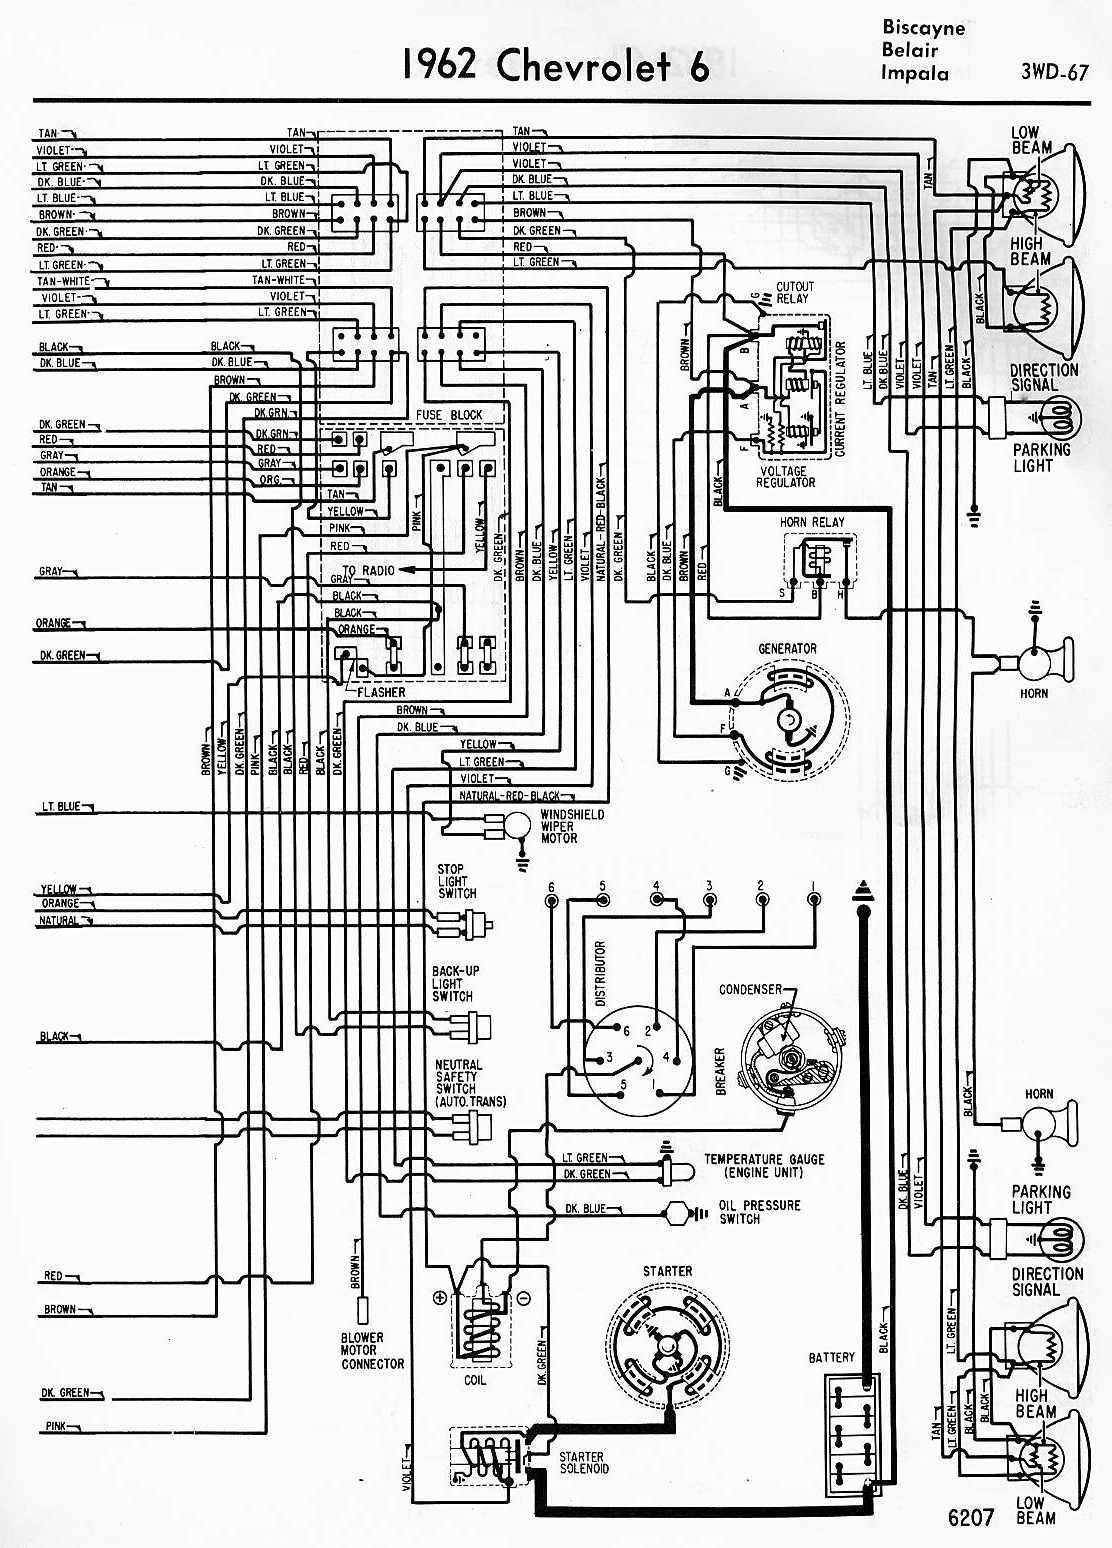 1967 nova wiper motor wiring diagram great installation of wiring 67 nova wiper motor wiring diagram data wiring diagram schema rh 45 danielmeidl de 1962 nova wiring diagram 1962 nova wiring diagram